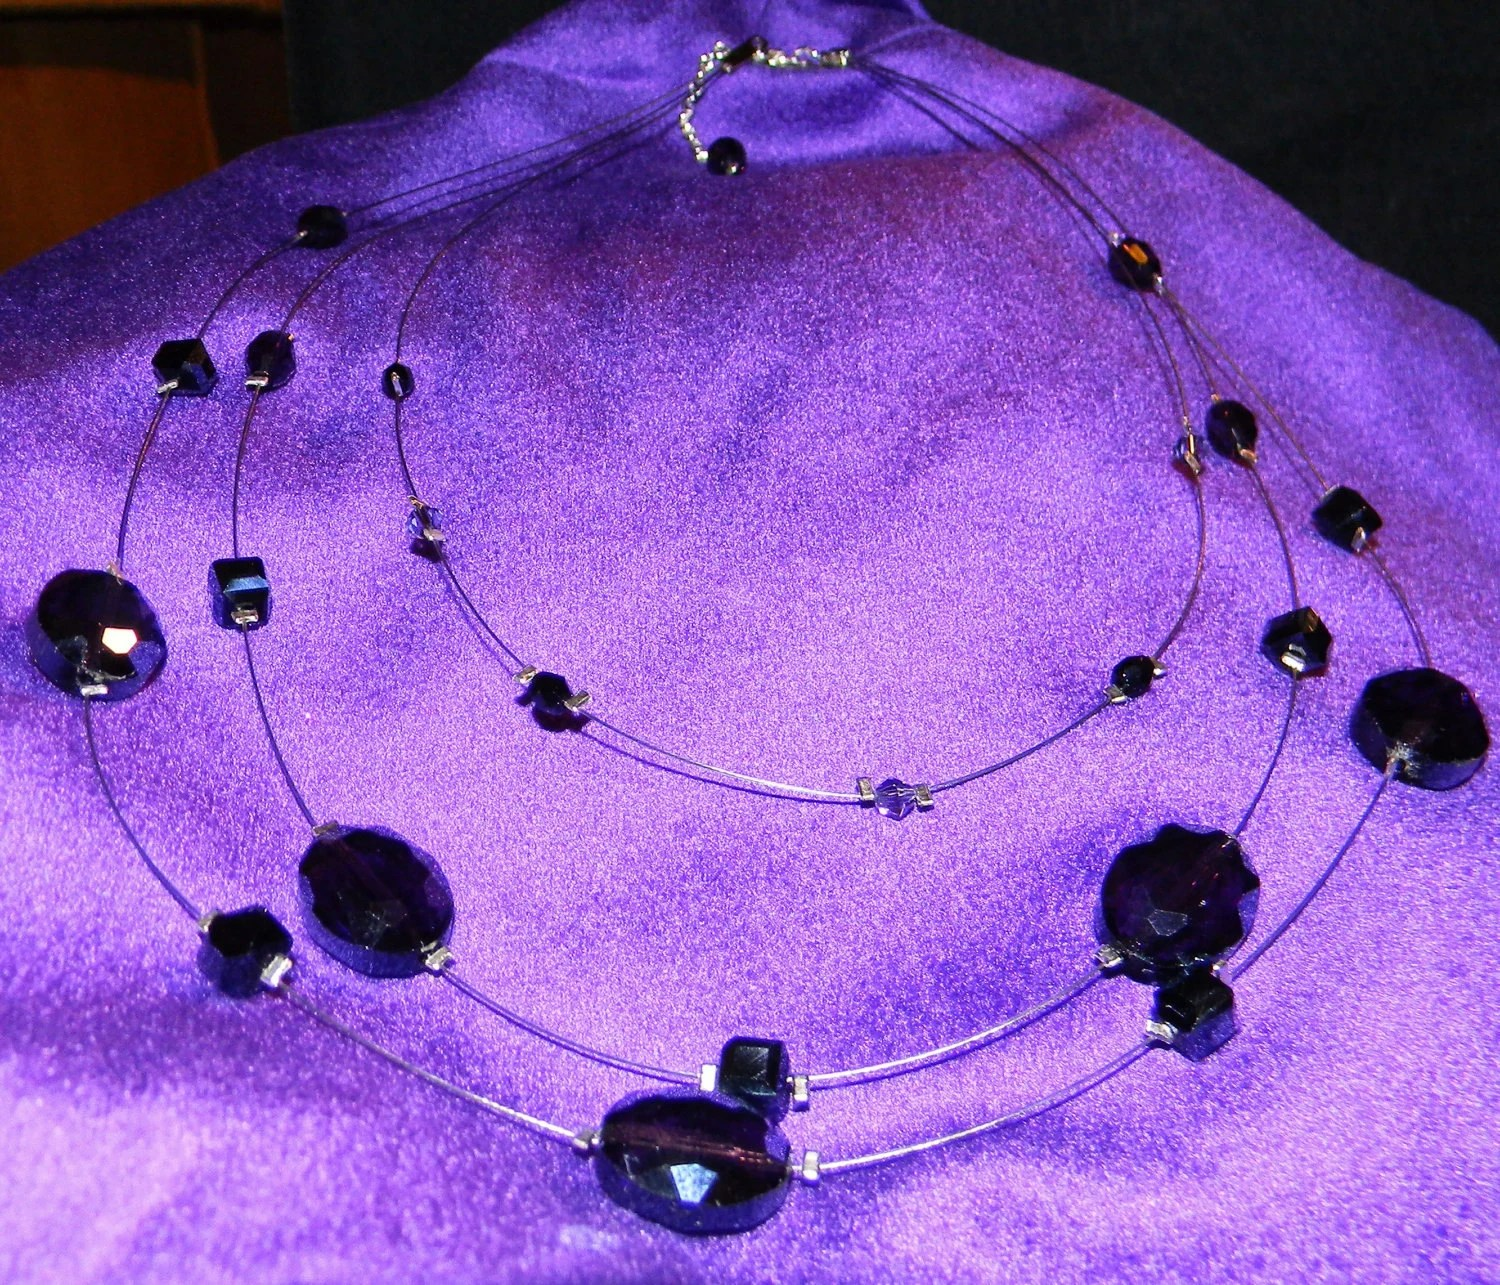 Gorgeous Deep Purple and Black Swarovski Crystal Beaded Multi Strand Necklace